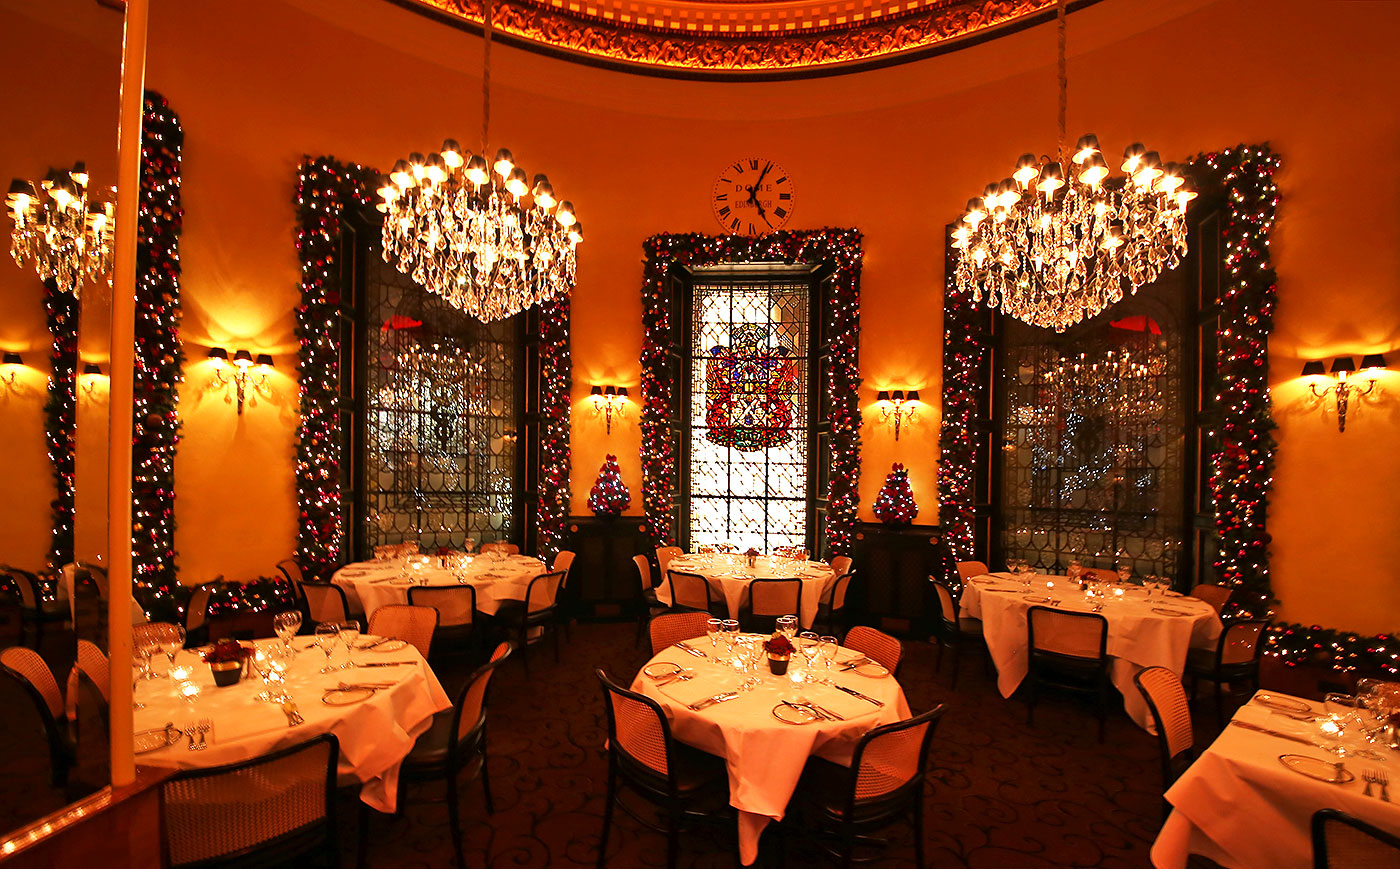 The Dome Restaurant, 14 George Street  14 George Street  ~ 031218_Christmas Decoration Ideas For A Restaurant